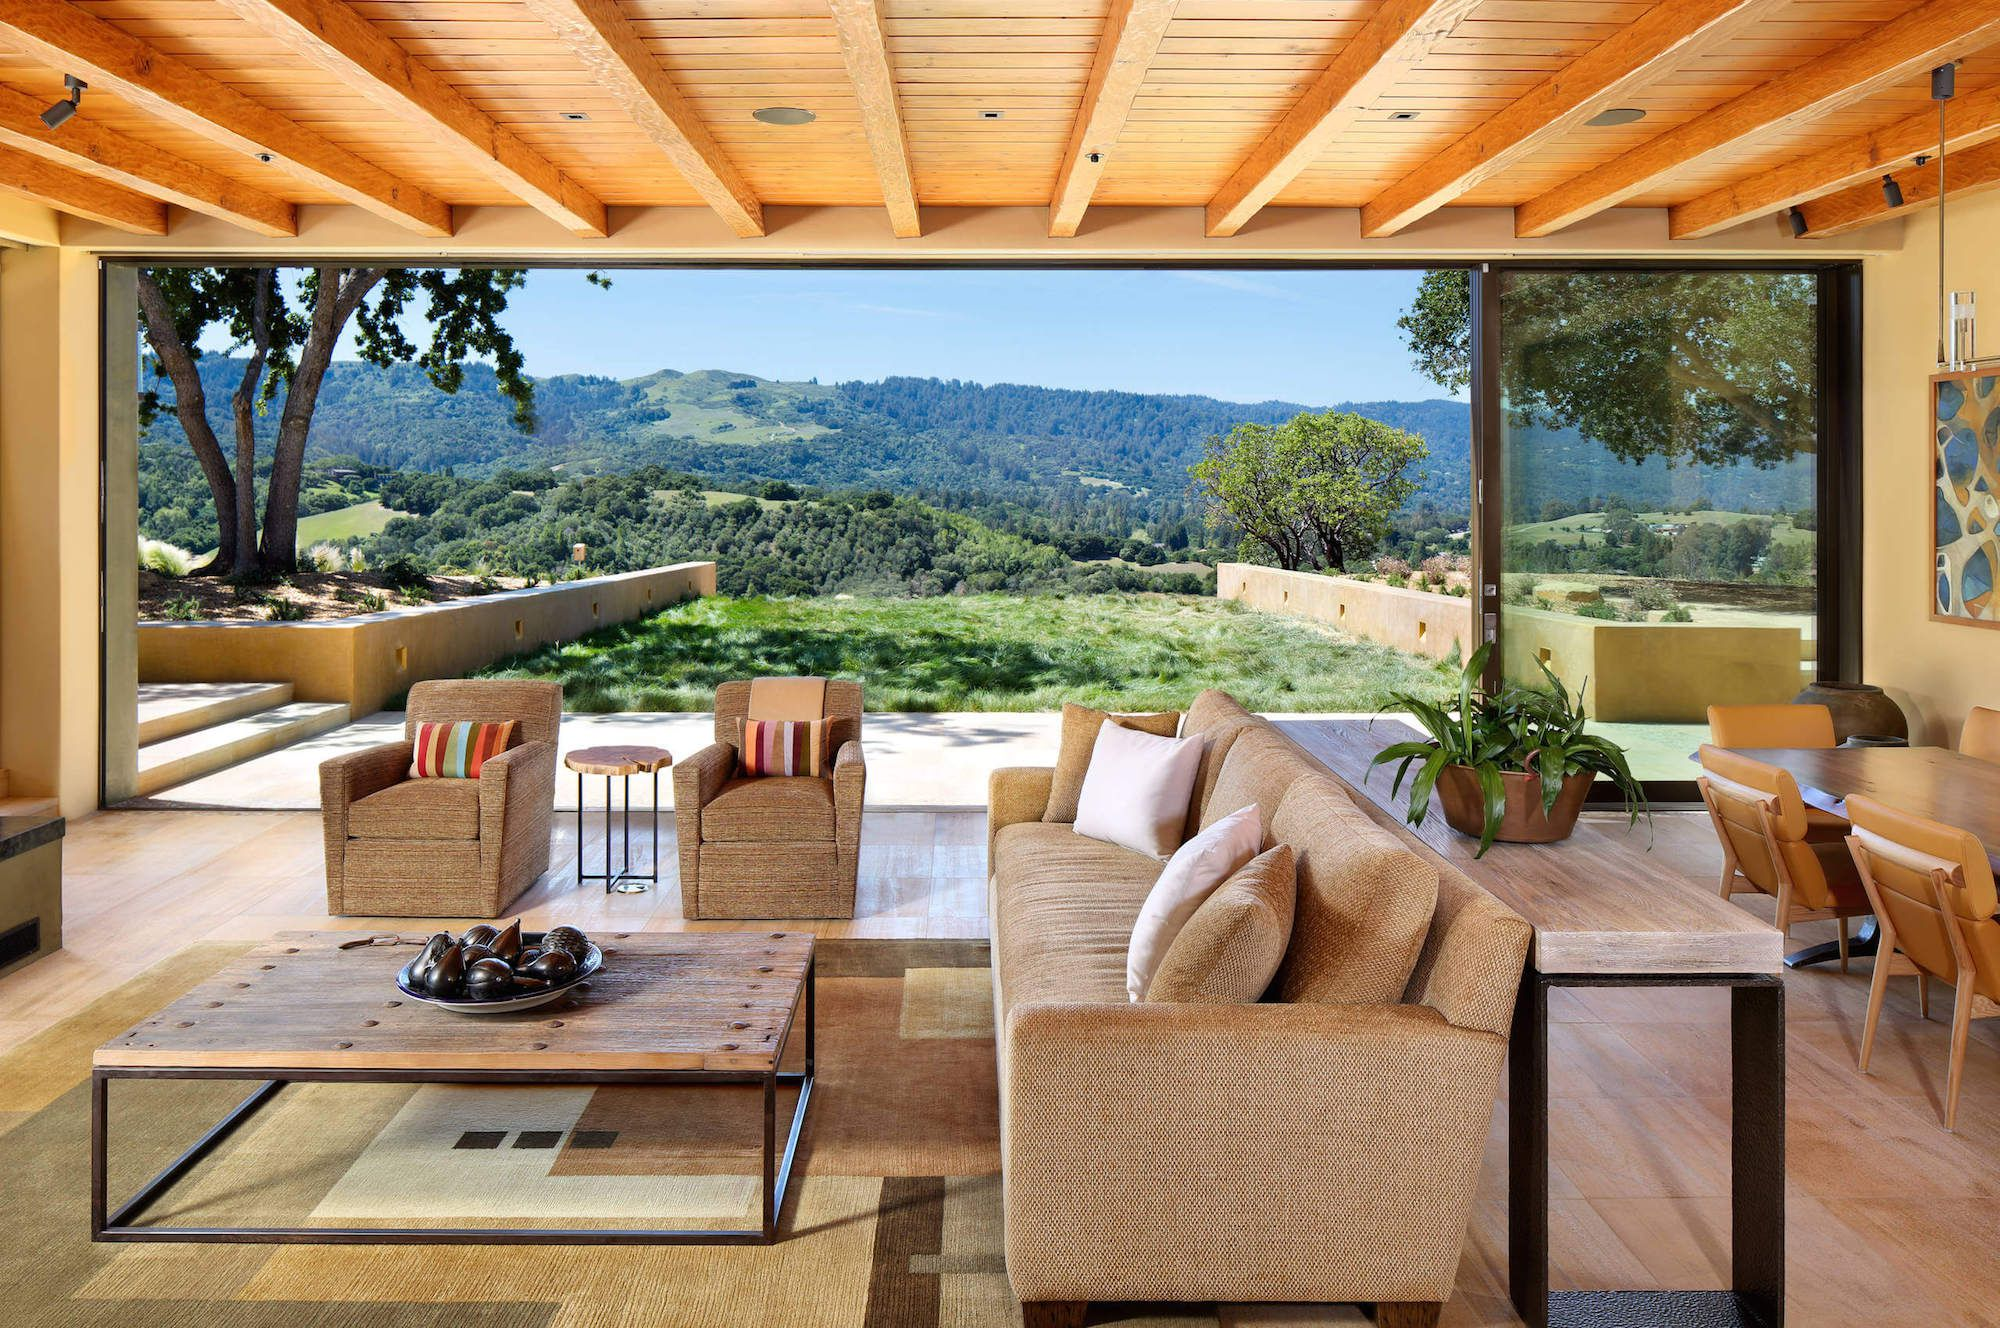 Spectacular-palo-alto-hills-stoecker-northway-architects-13